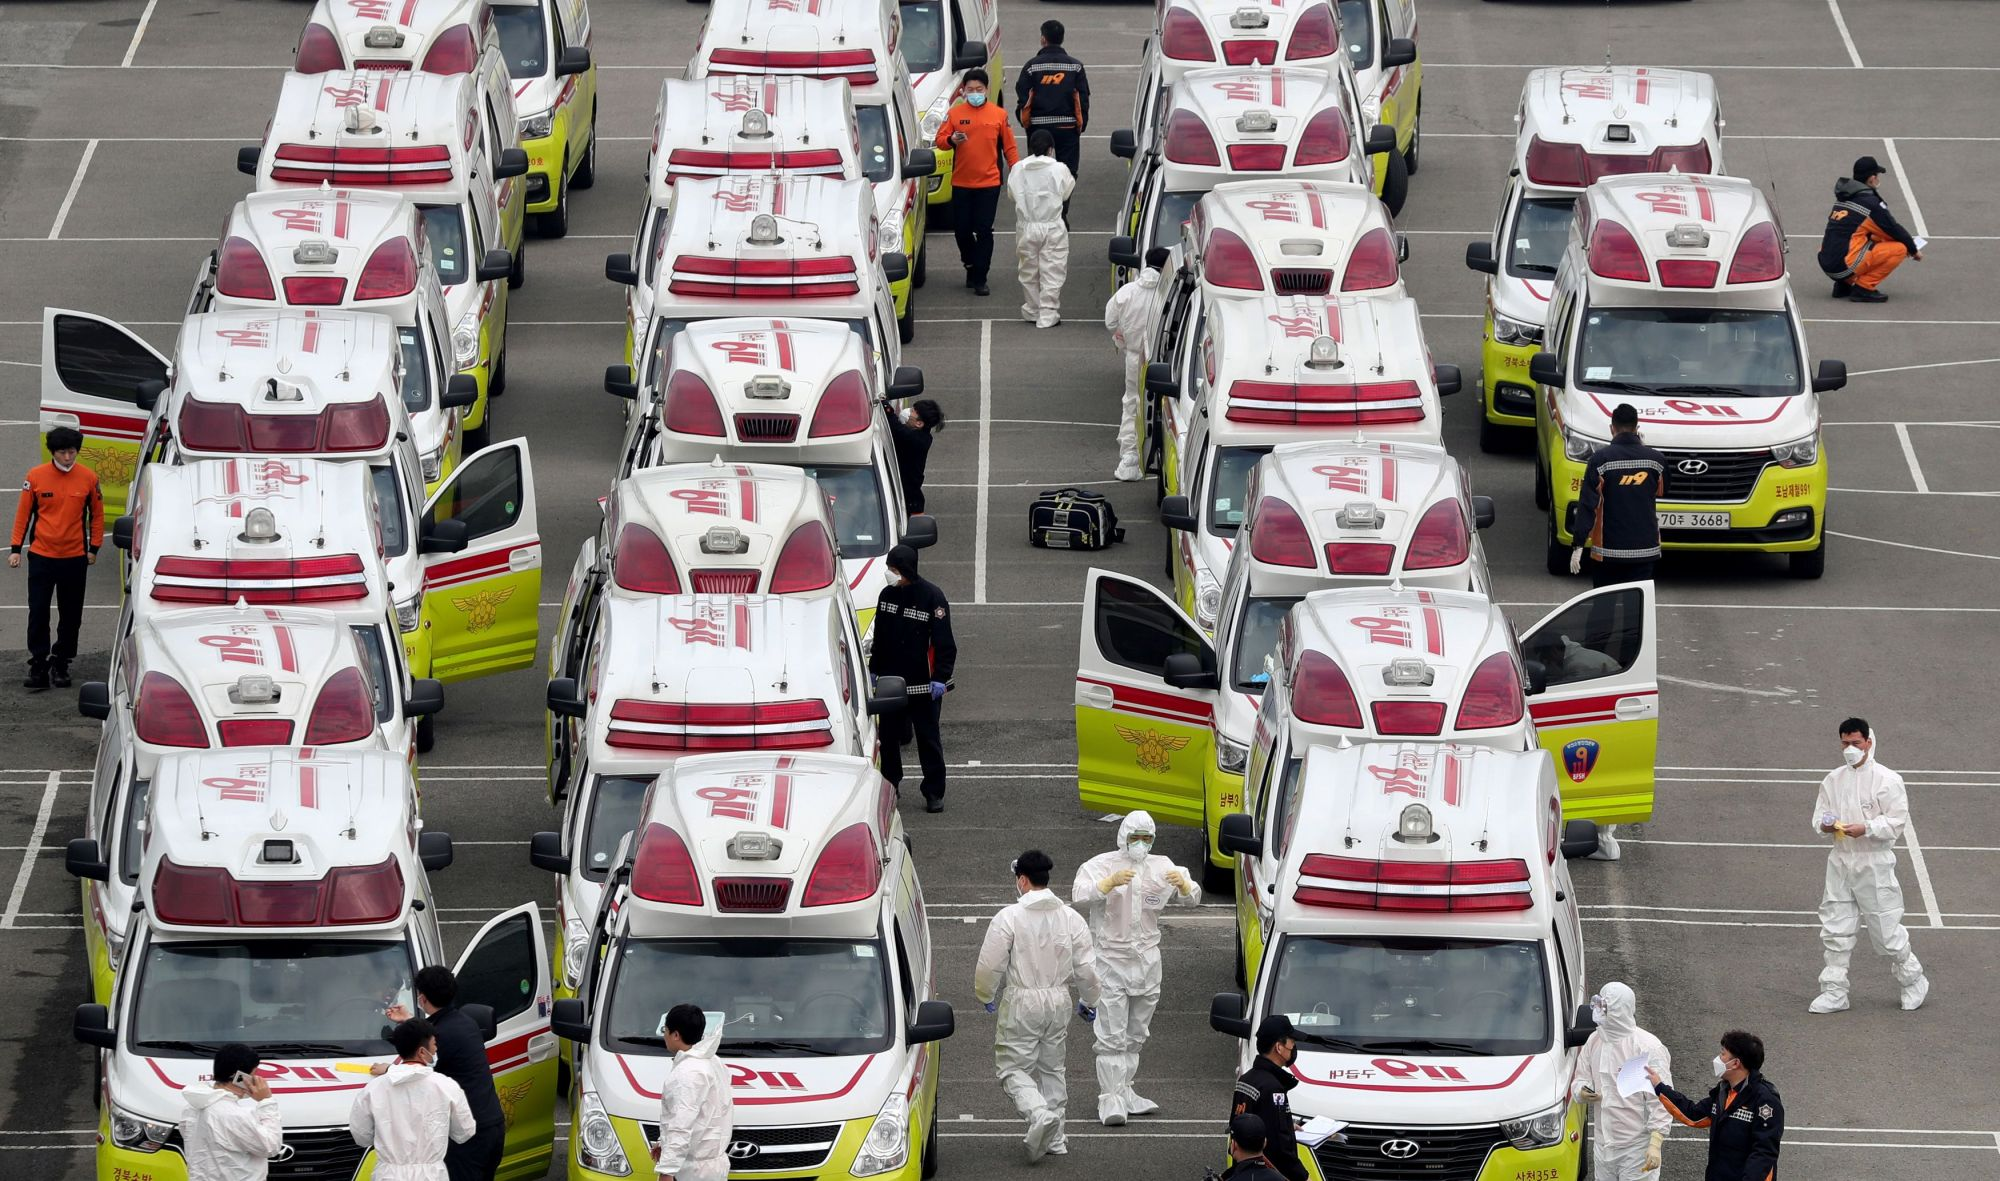 Ambulances to transport patients infected with the new coronavirus are parked in Daegu, South Korea, on Sunday.   YONHAP / VIA REUTERS